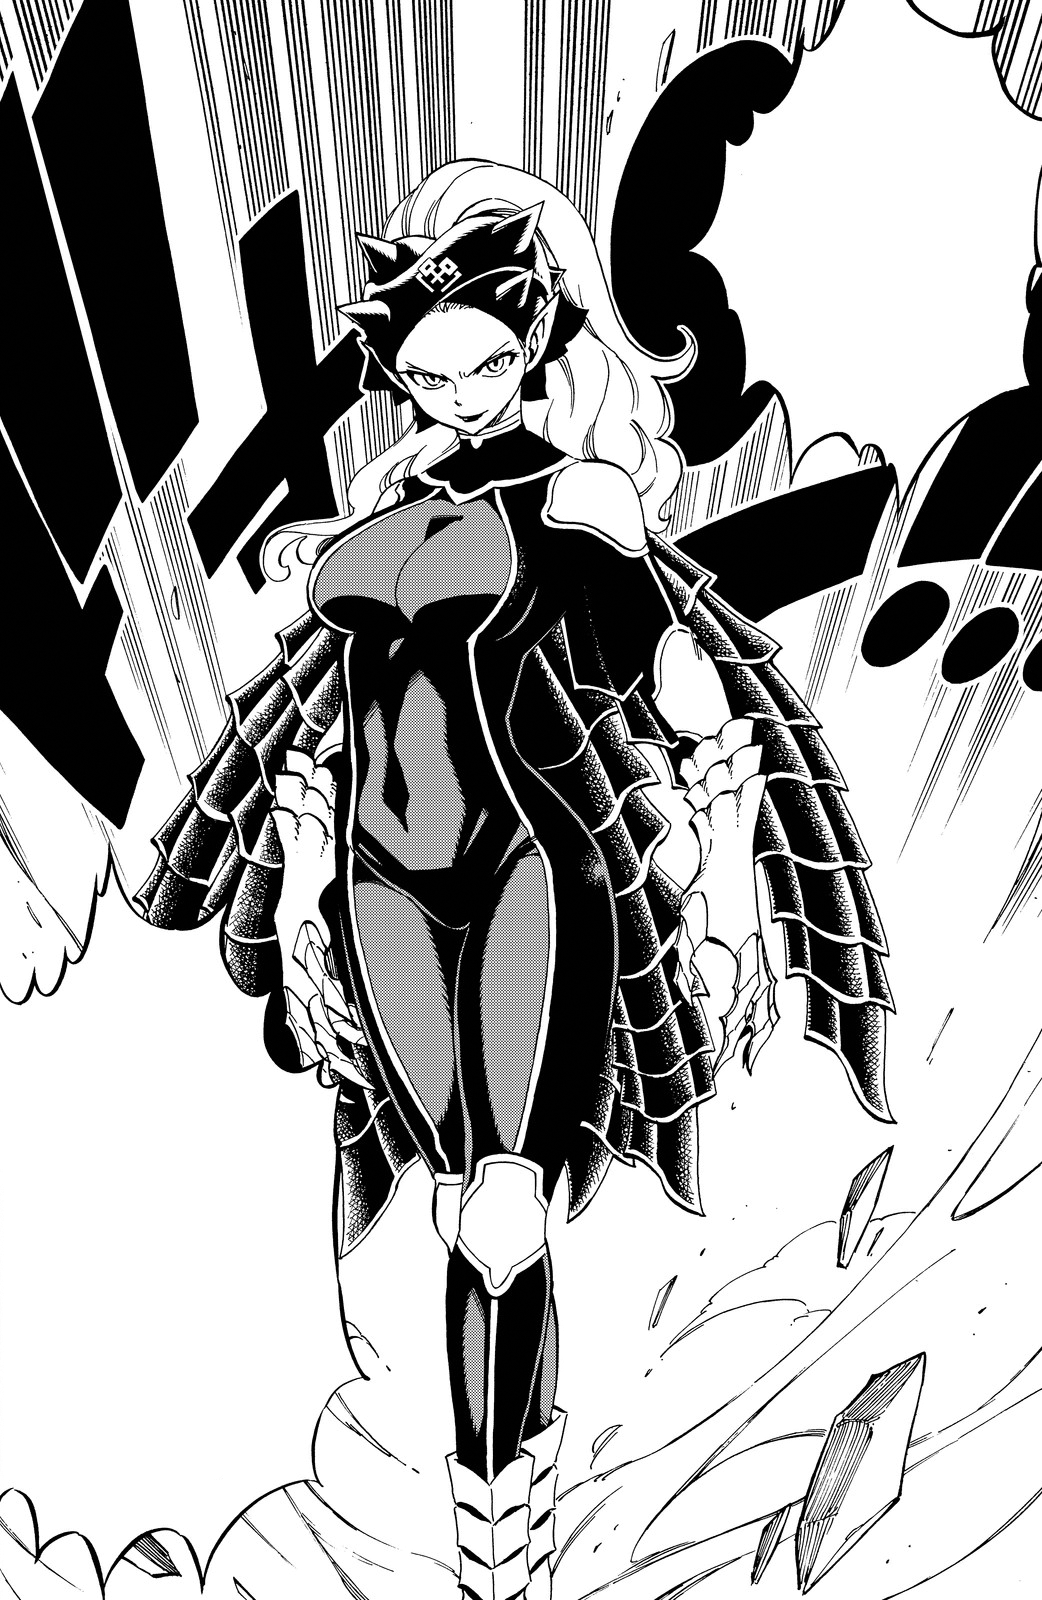 Satan Soul Mirajane Alegria Png Fairy Tail Manga Read Fairy Tail Fairy Tail Anime All our images are transparent and free for personal use. pinterest